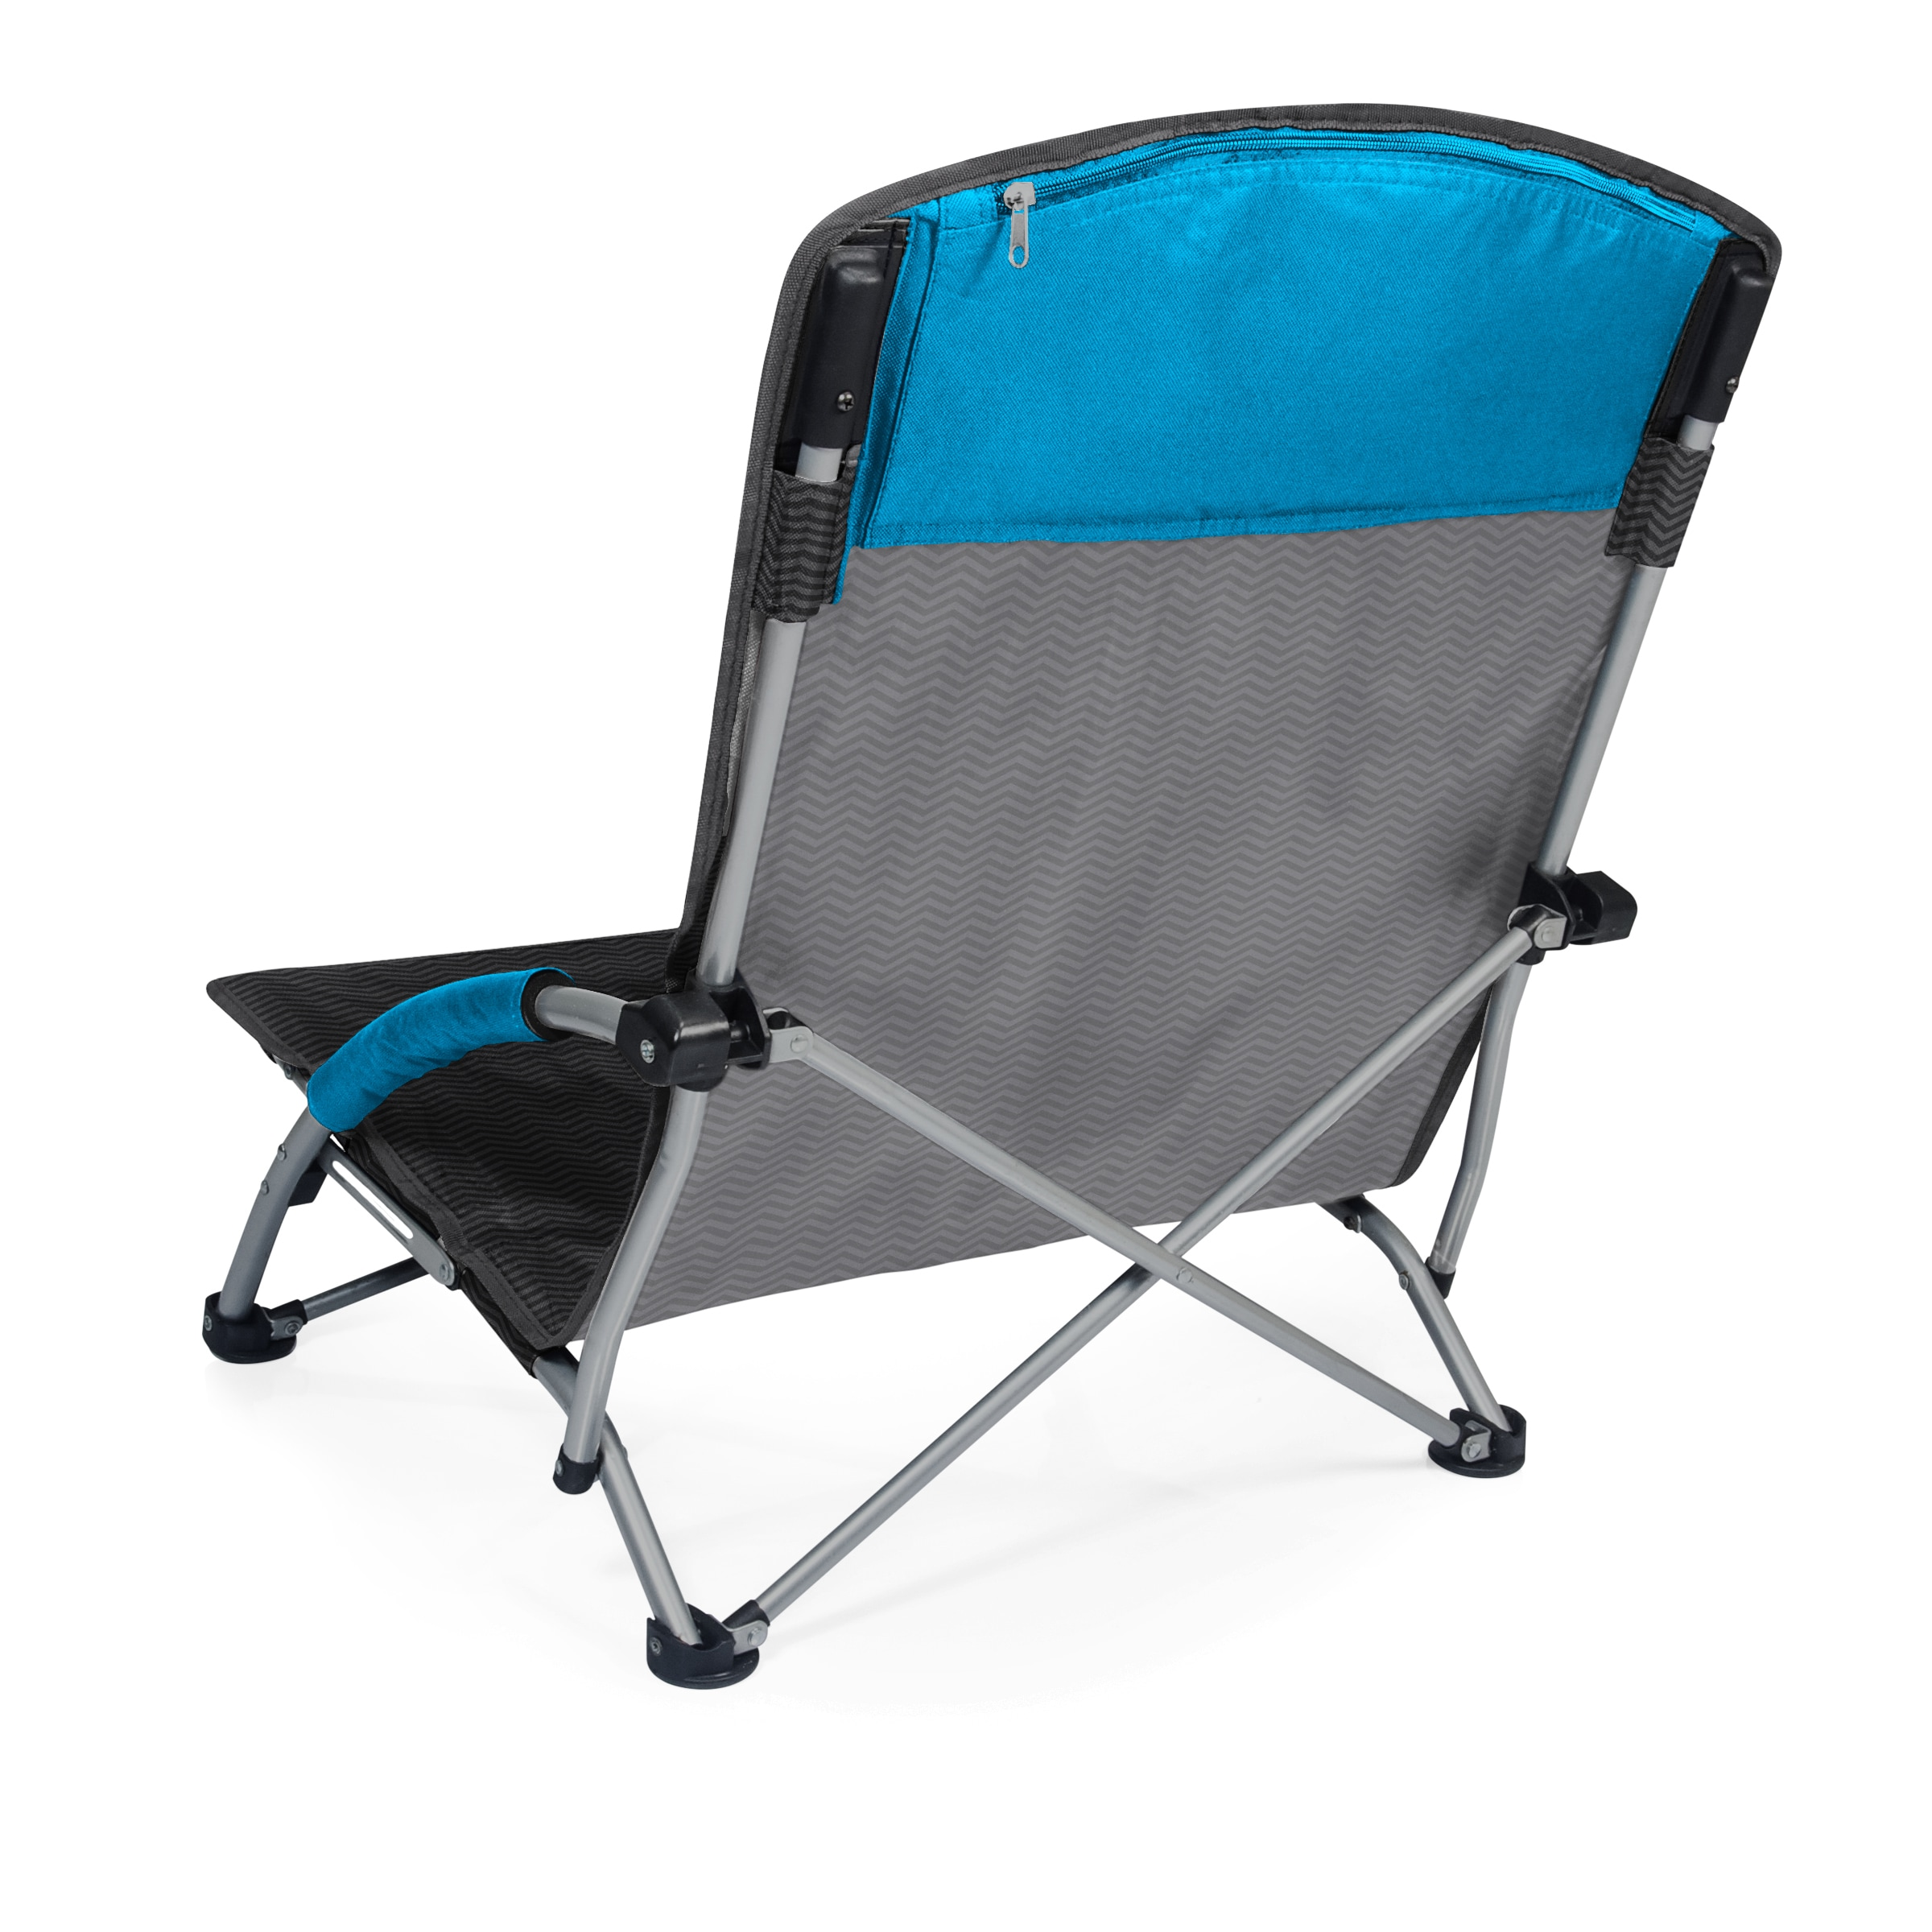 Waves Collection Picnic Time Tranquility Chair Portable Beach Chair